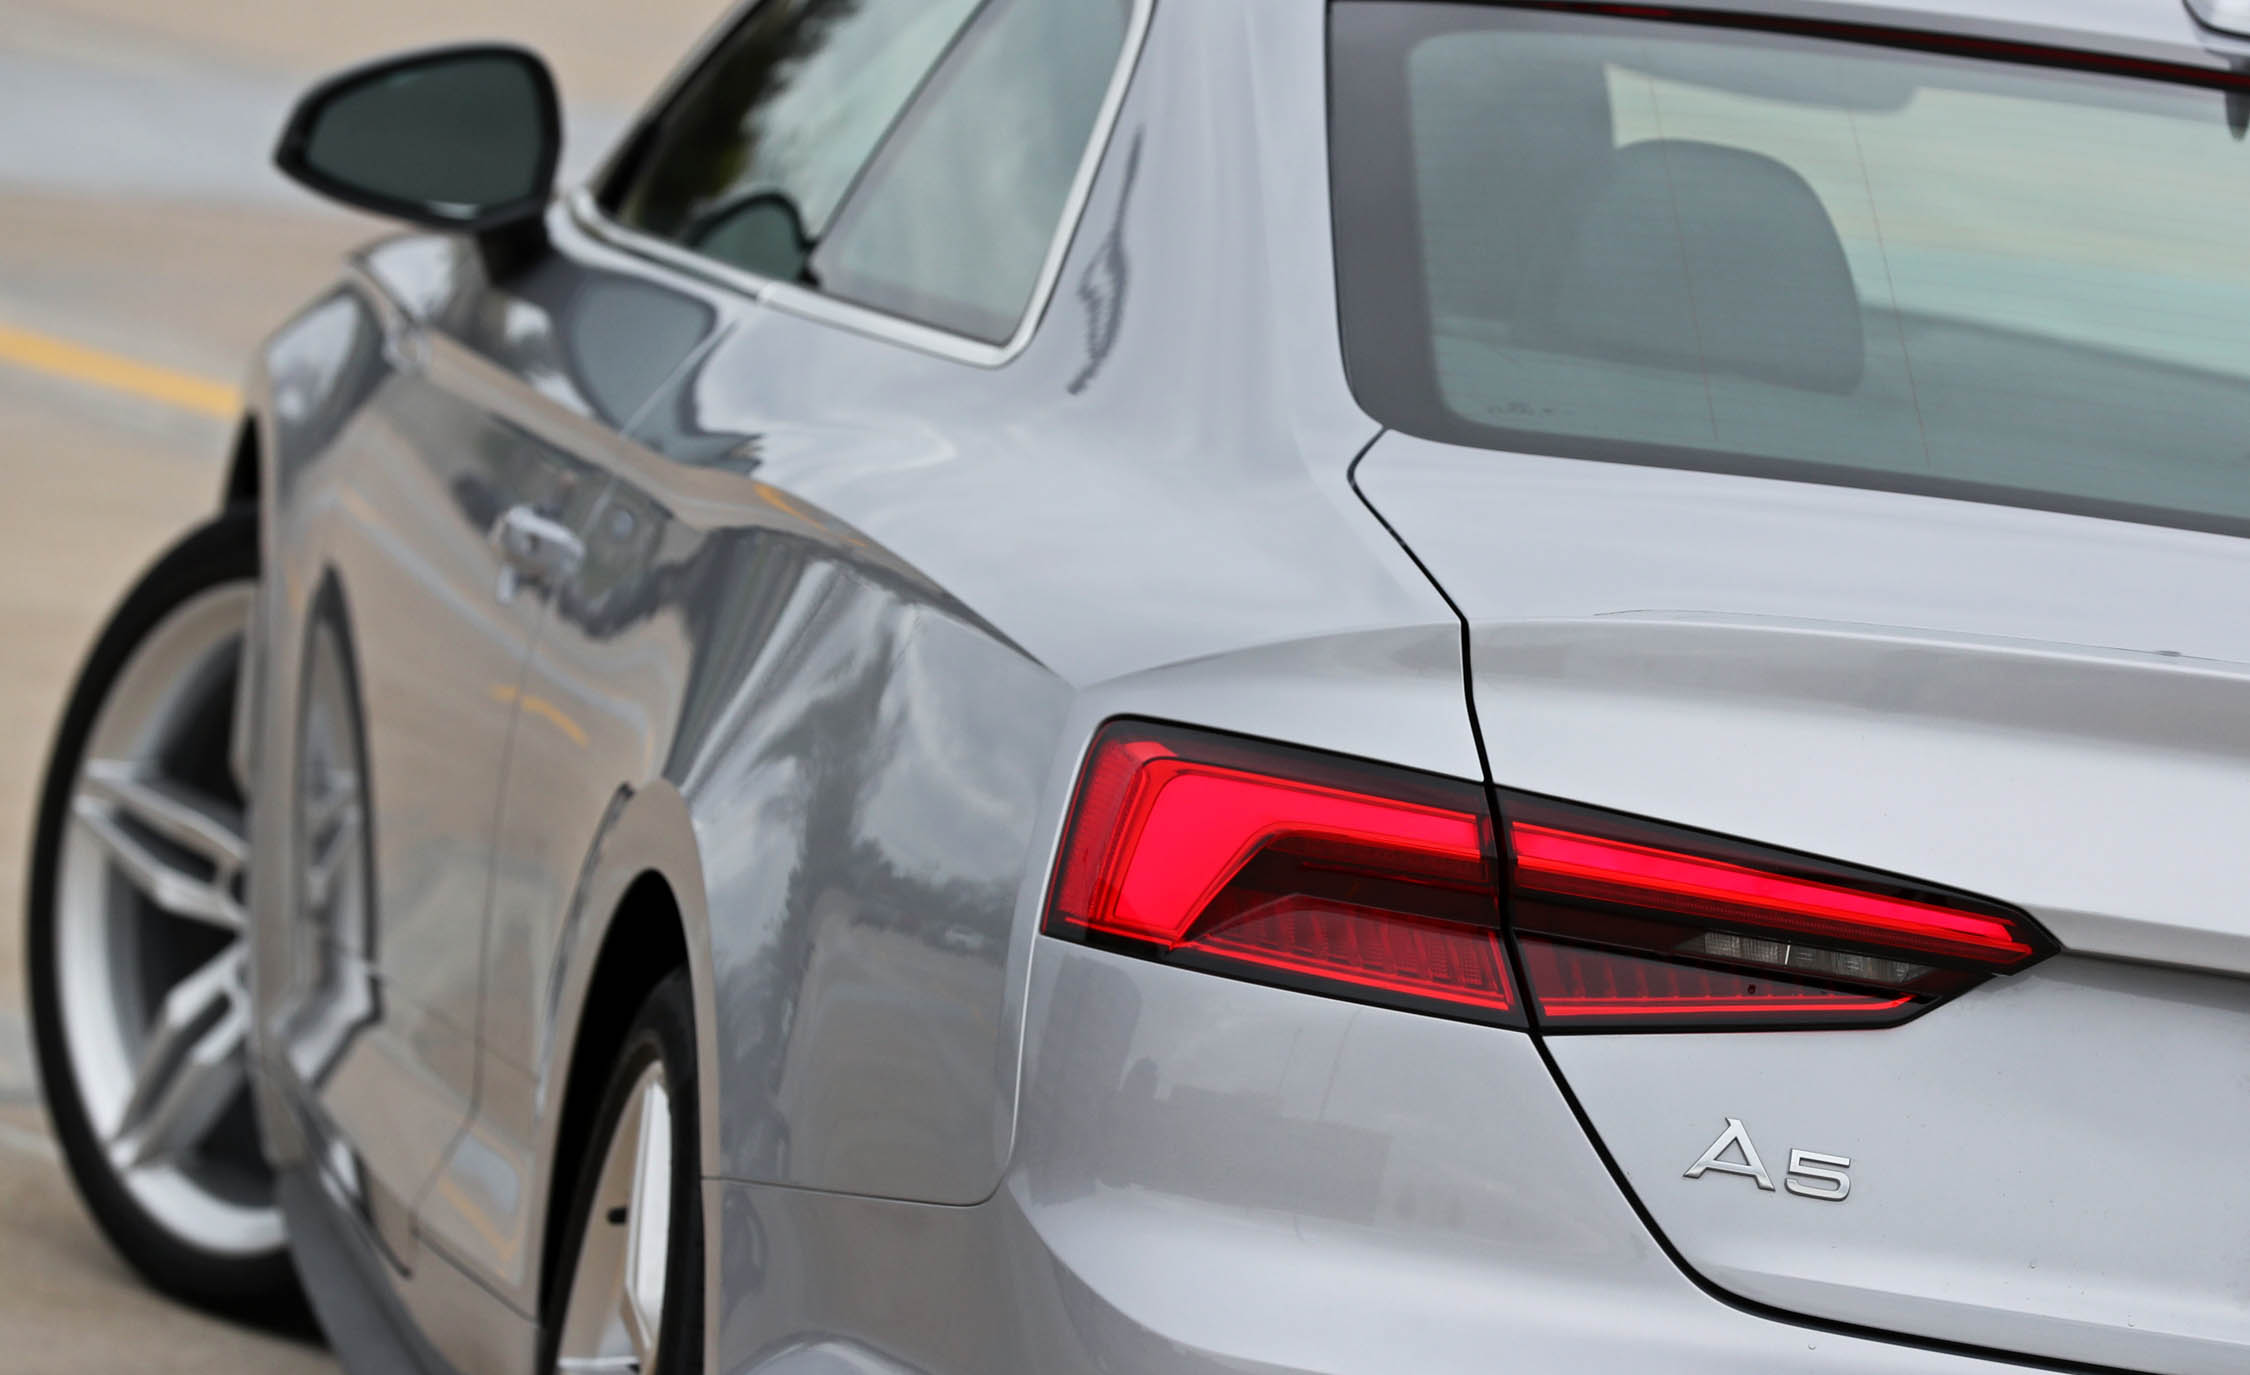 2018 Audi A5 Coupe Exterior View Taillight (Photo 13 of 50)